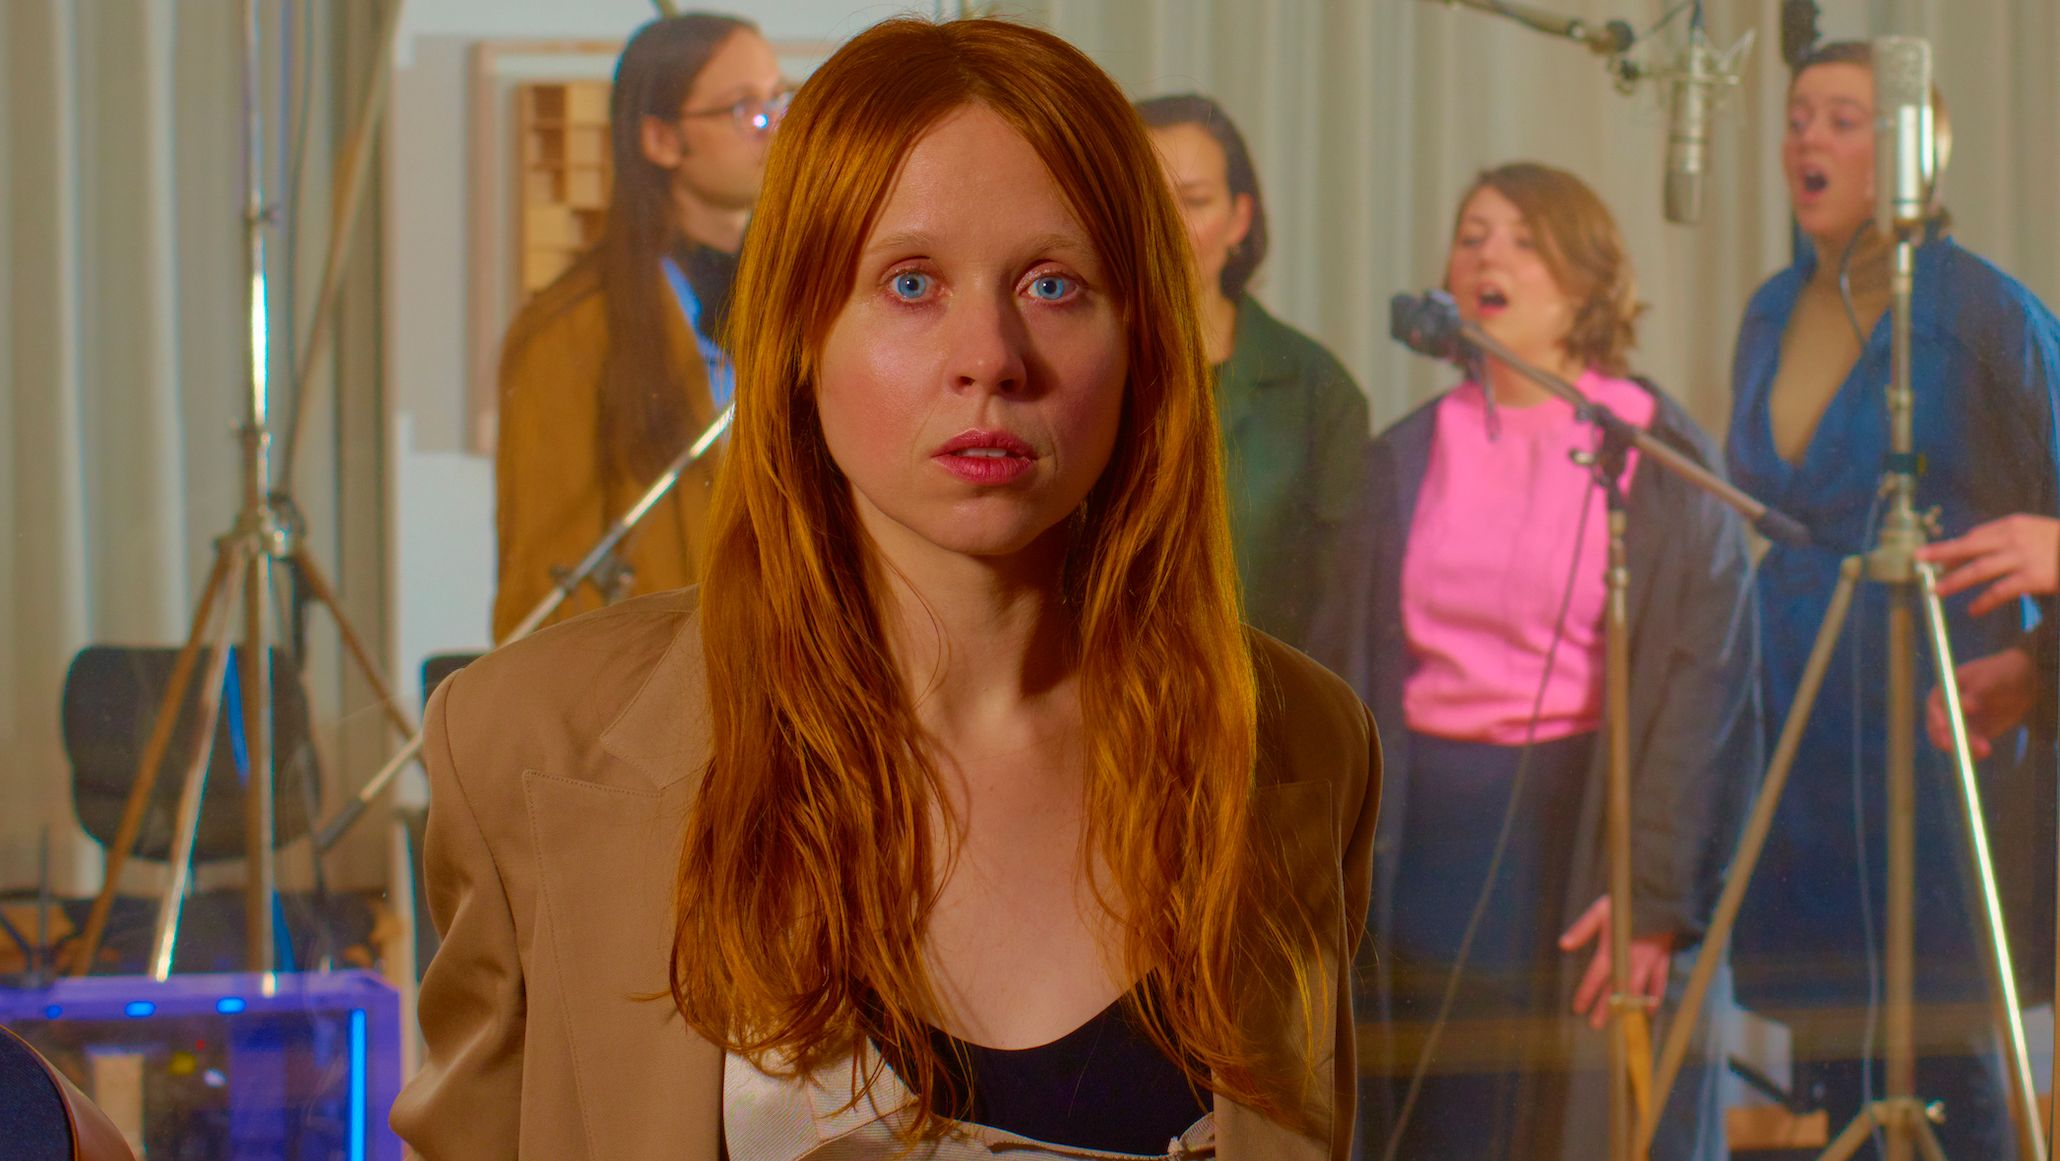 US-Musikerin Holly Herndon im Aufnahmestudio, hinter ihr singen vier Background-Musiker